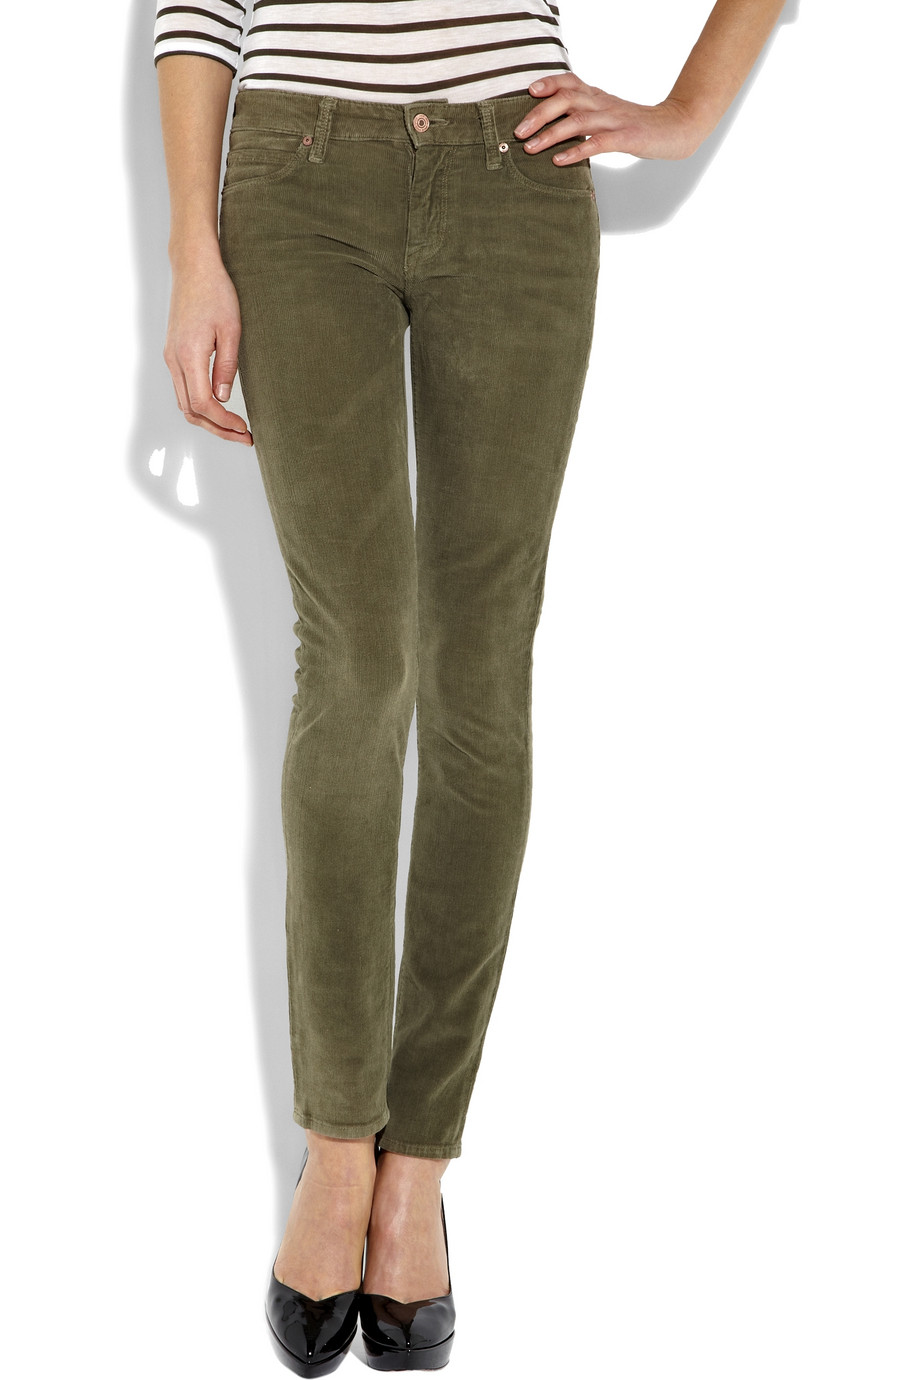 Vince Mid Rise Corduroy Skinny Jeans In Olive Green Lyst